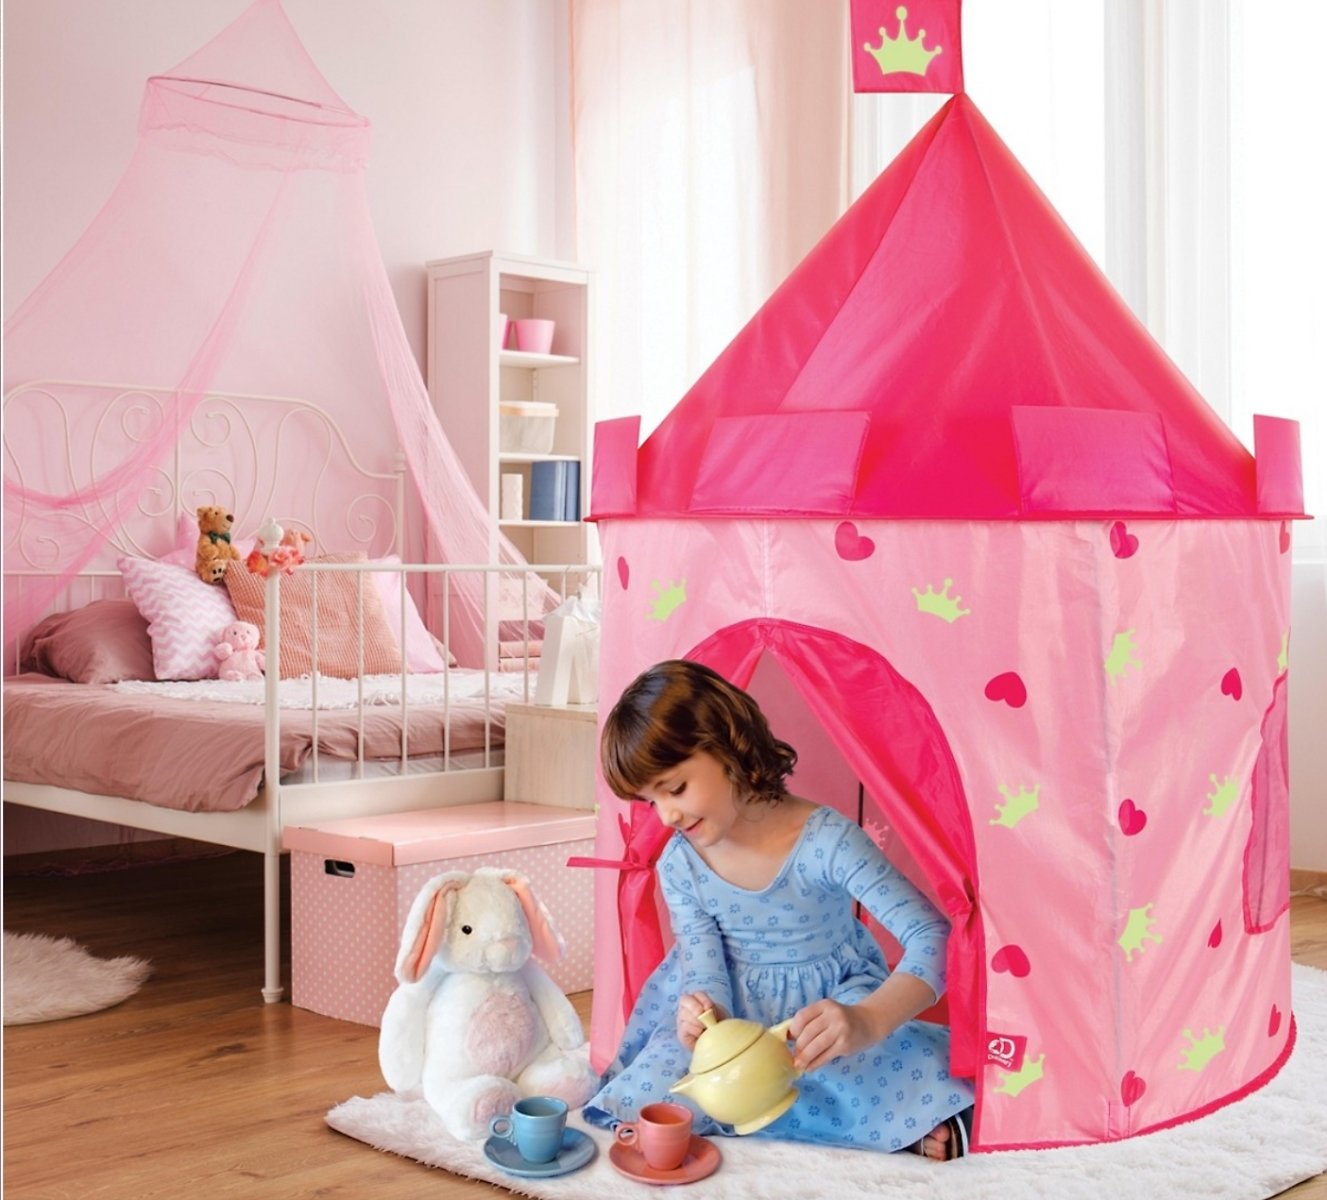 Discovery Kids Studio Mercantile Glow in The Dark Toy Tent Castle